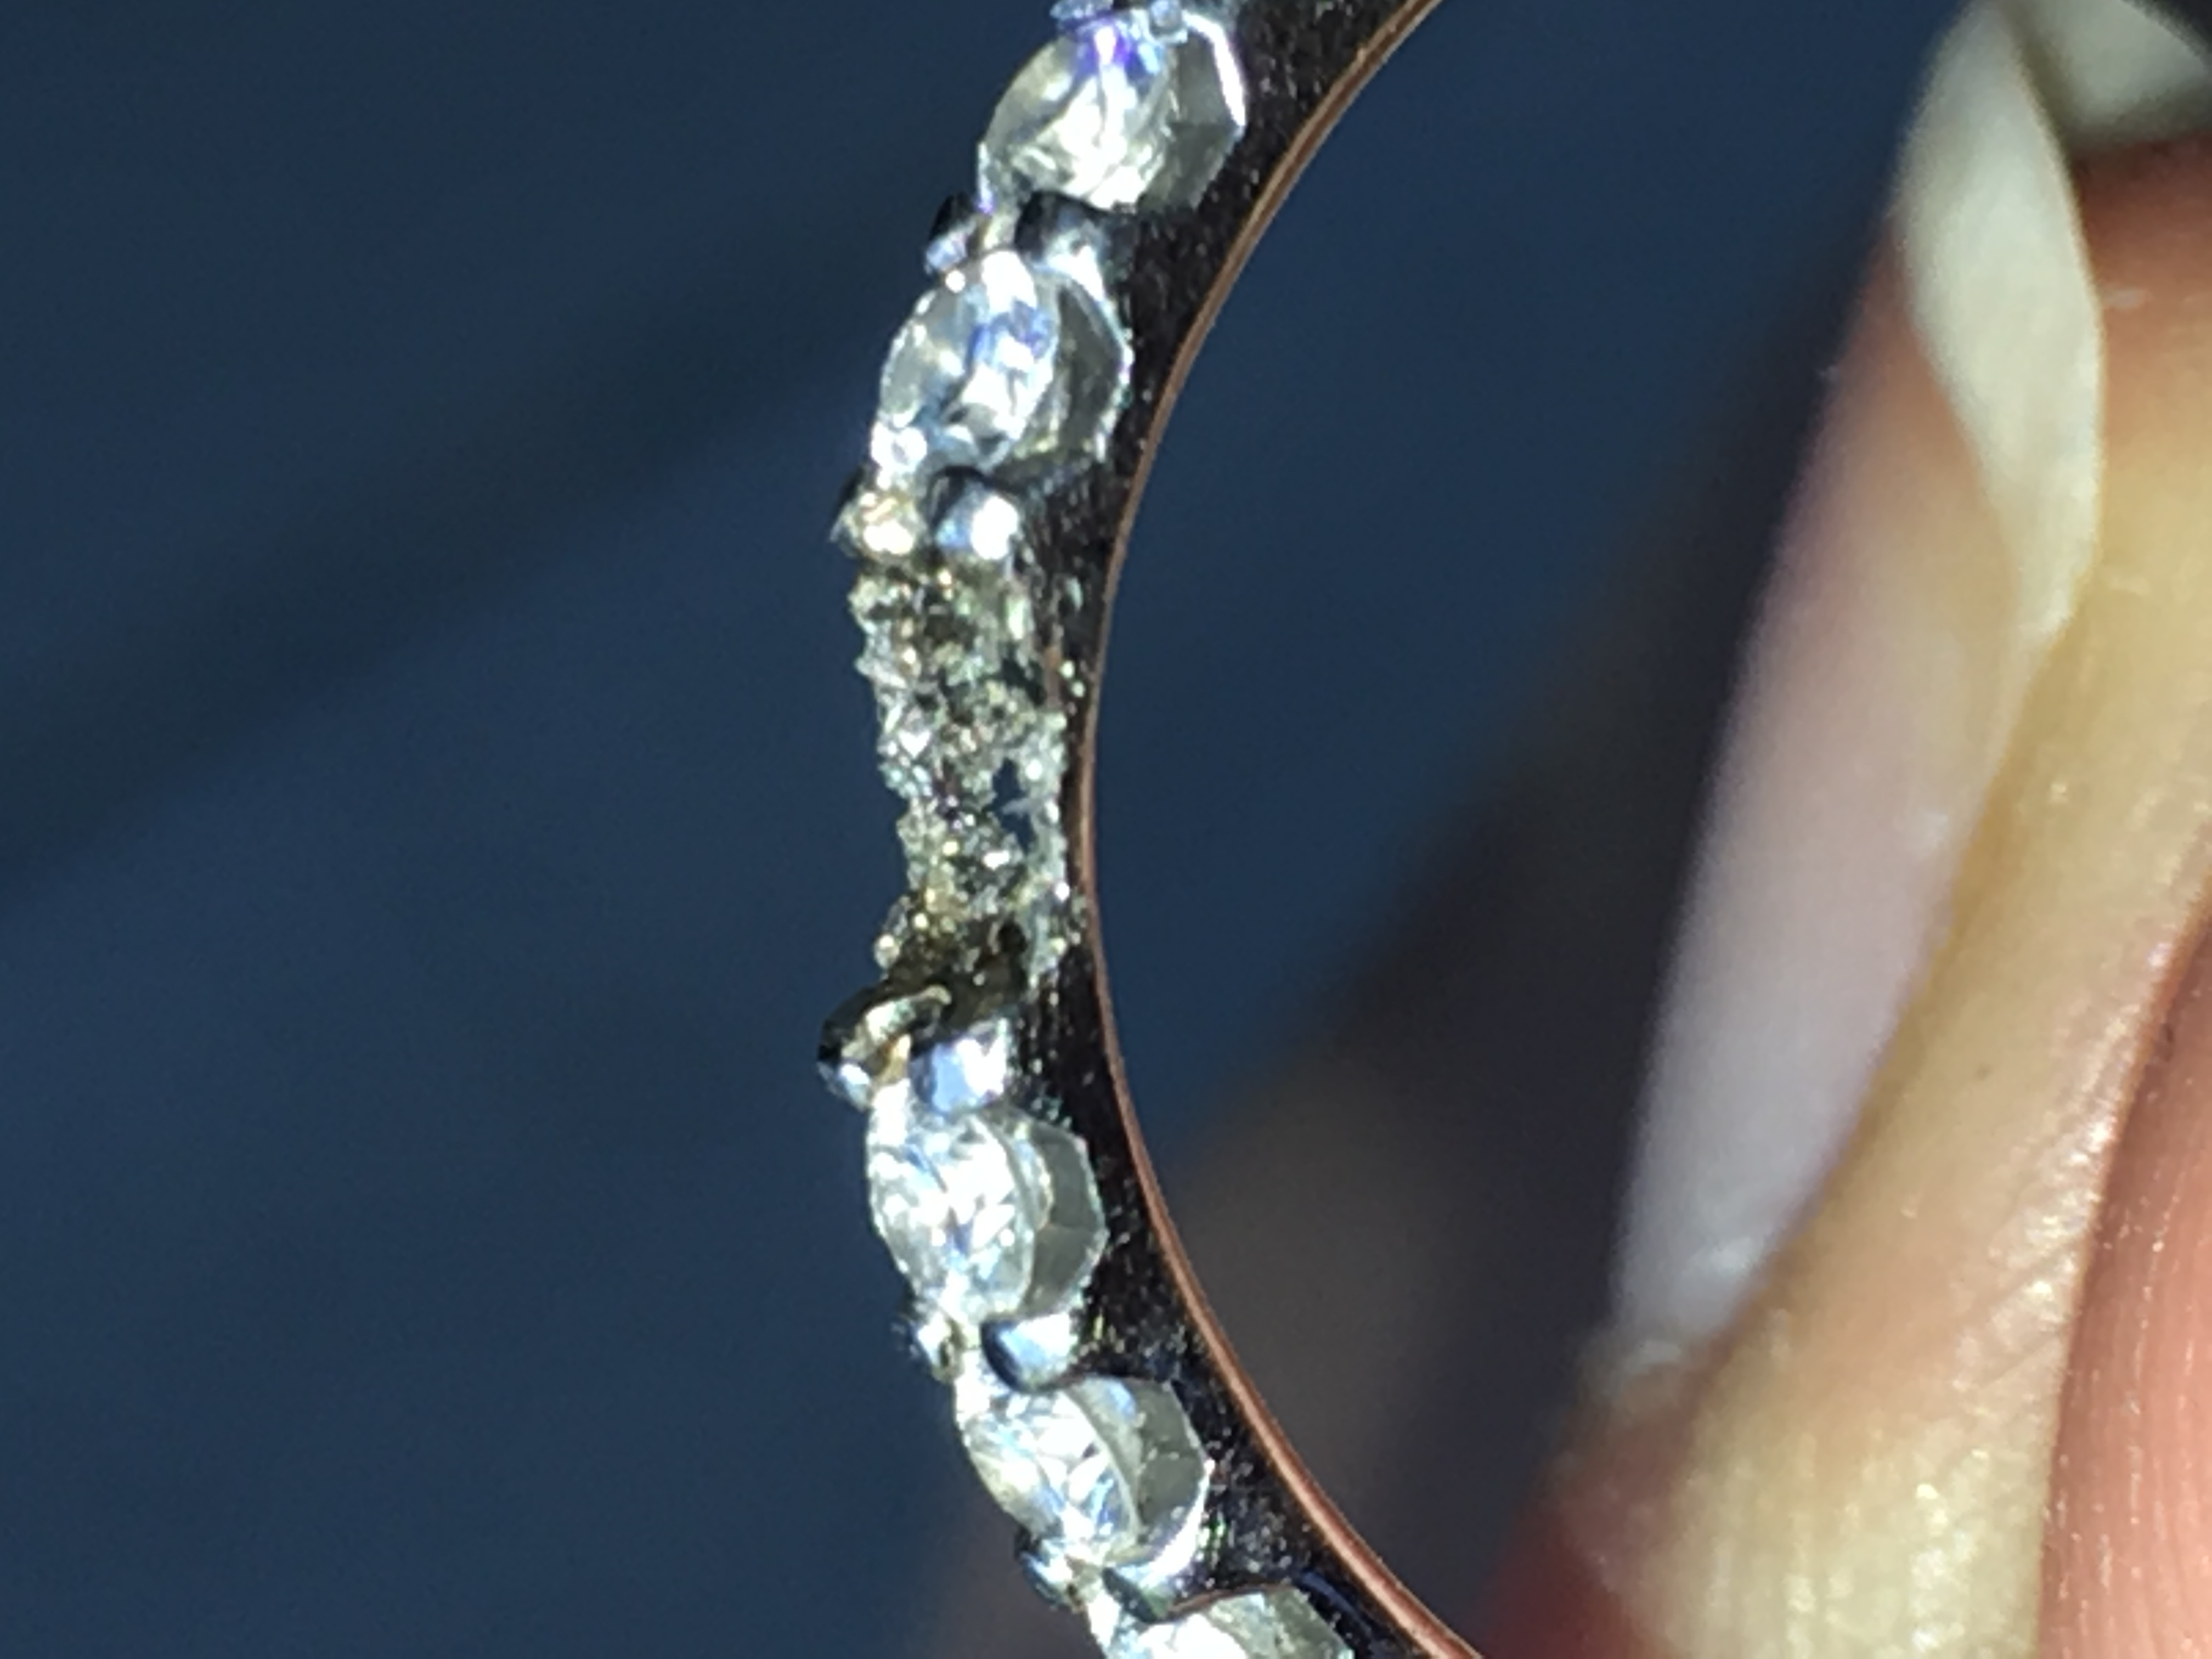 d93db55e97d4a Mounting broke off Platinum Ring. Shoddy Jeweler Work? Please review ...